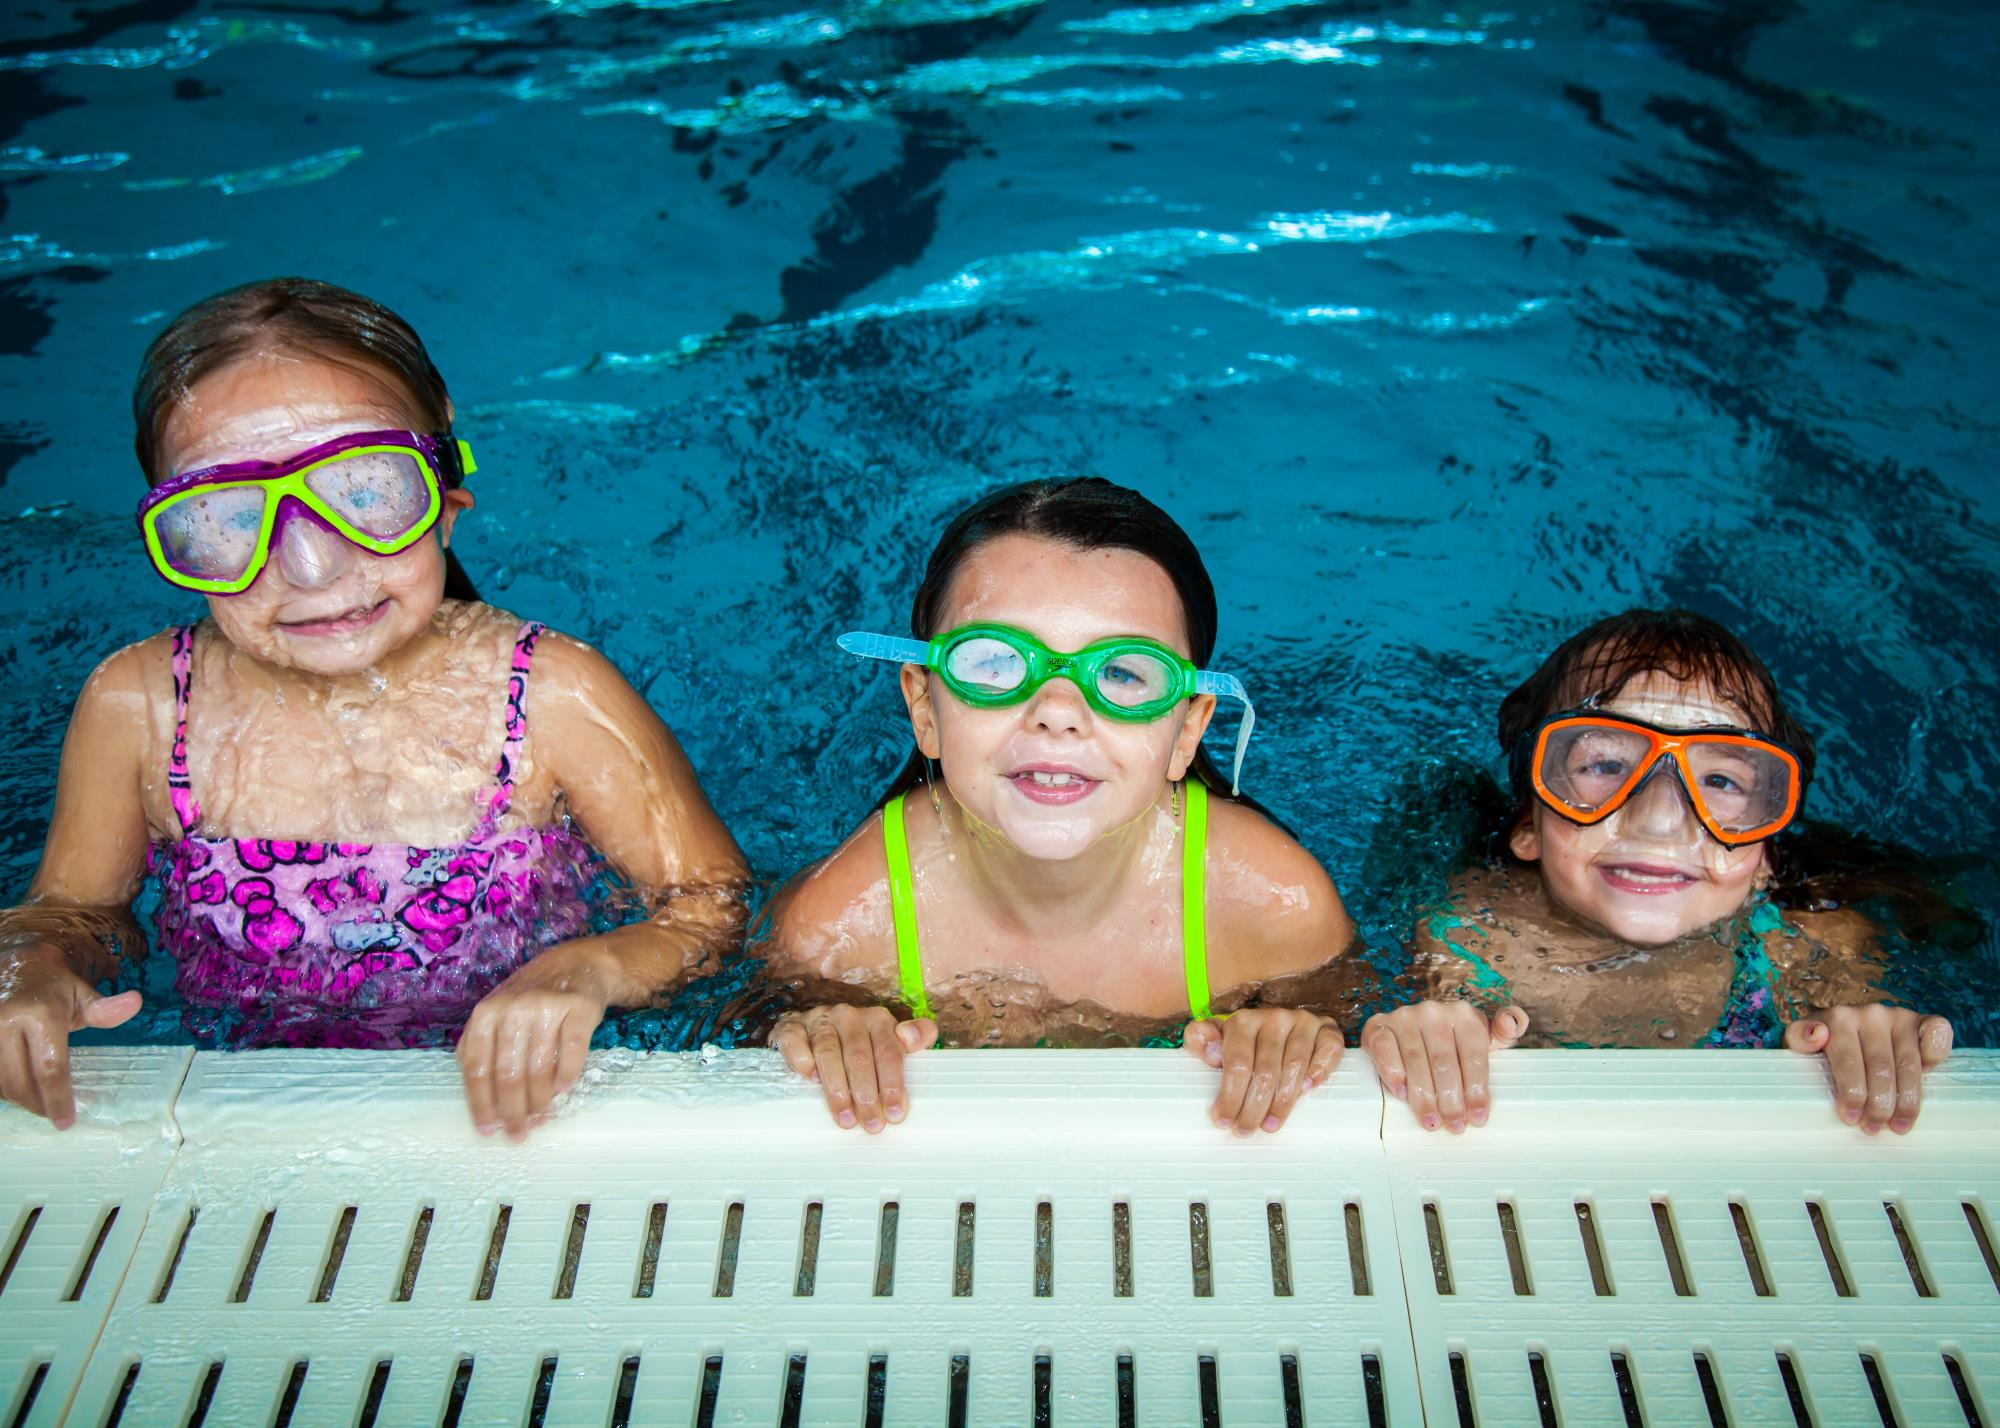 Three girls smiling while holding on to side of pool